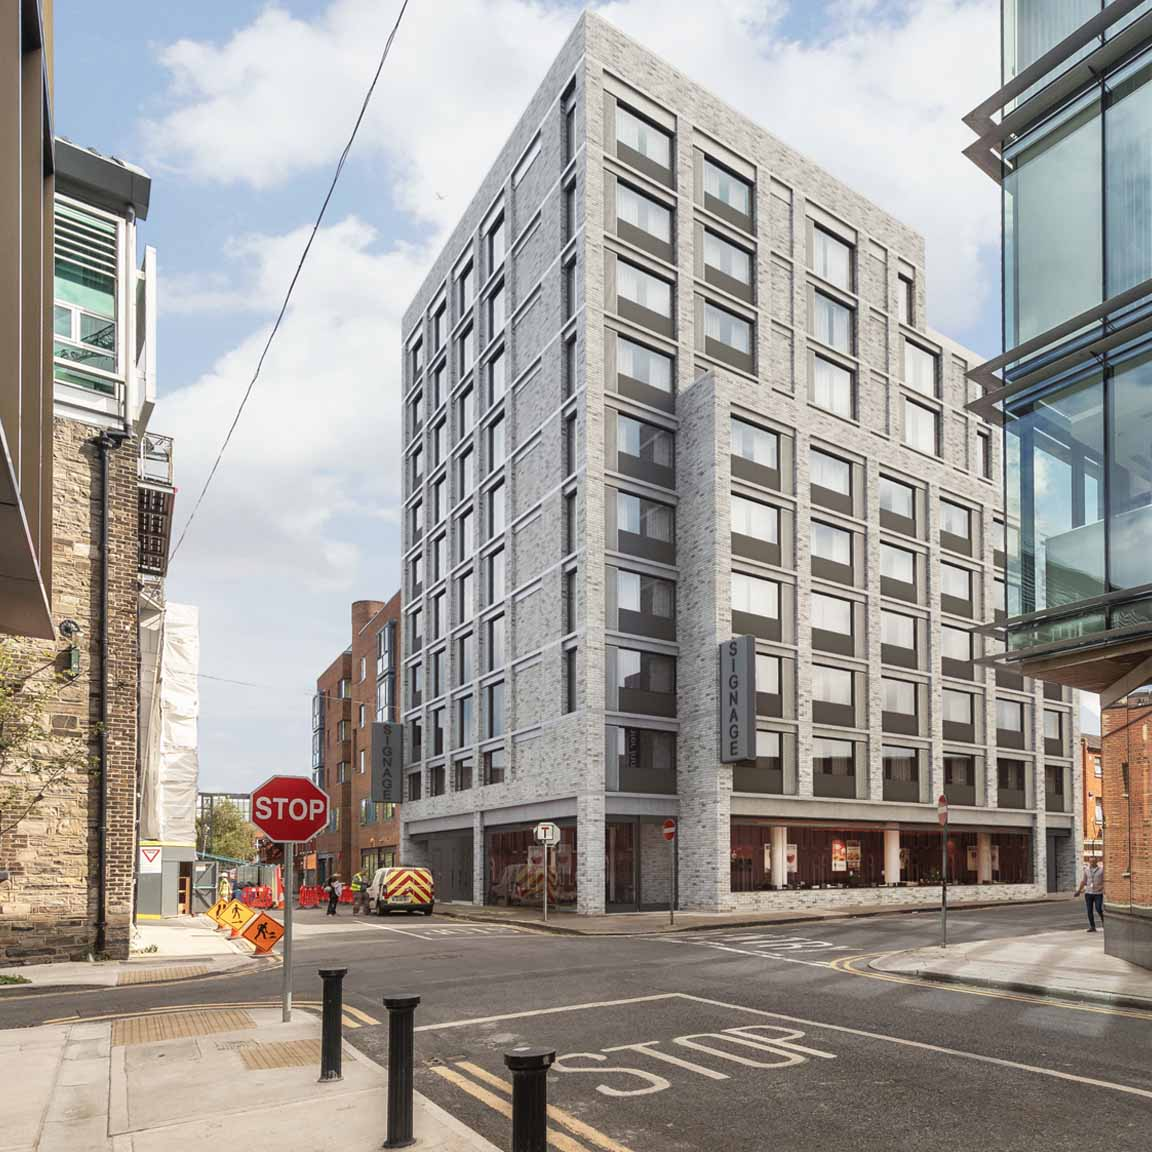 Verified view CGI of Proposed Premiere Inn hotel at Gloucester Street, Dublin Docklands